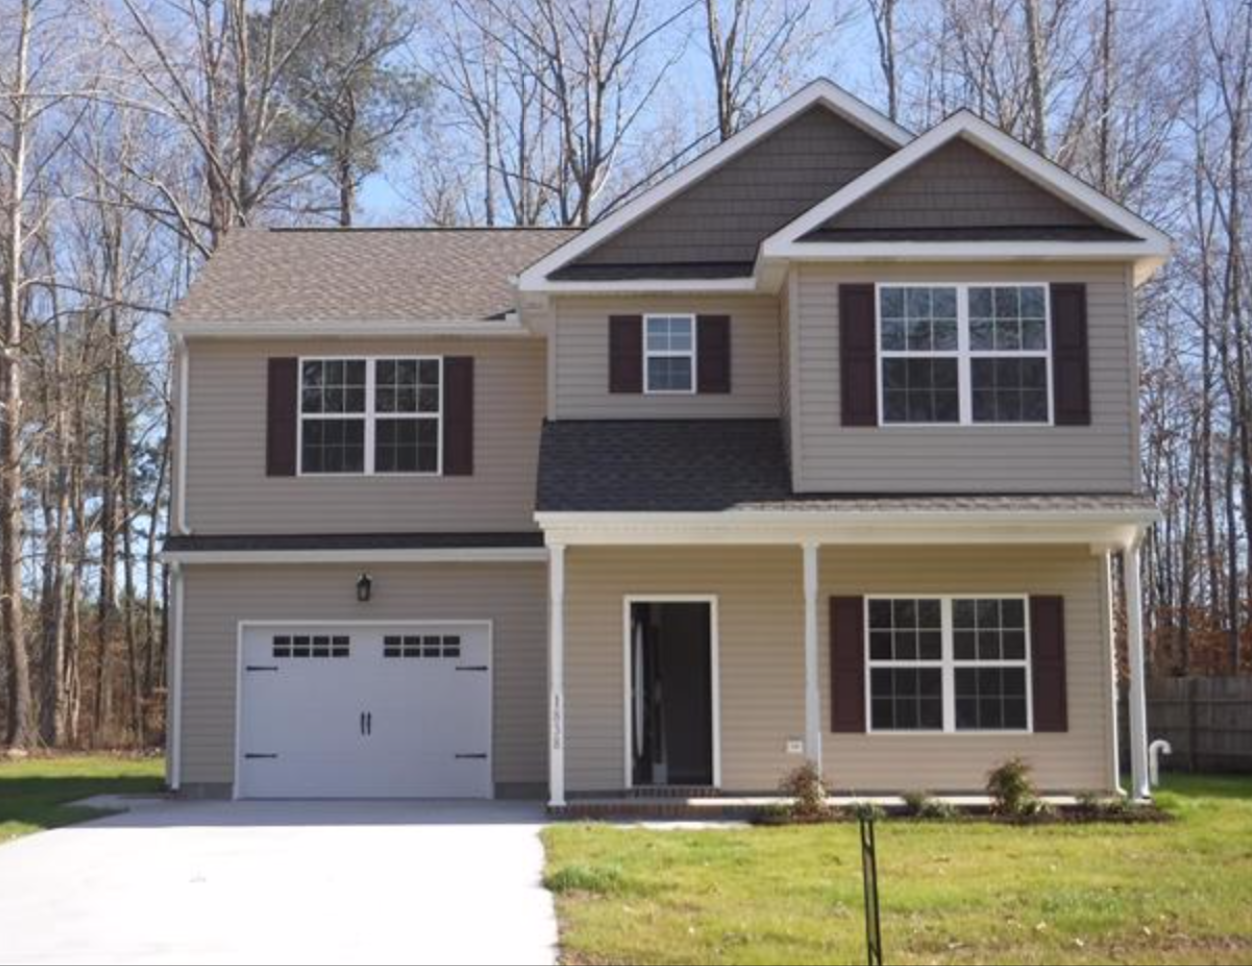 1838 MONTICELLO VIEW - NEW CONSTRUCTION IN SUFFOLK